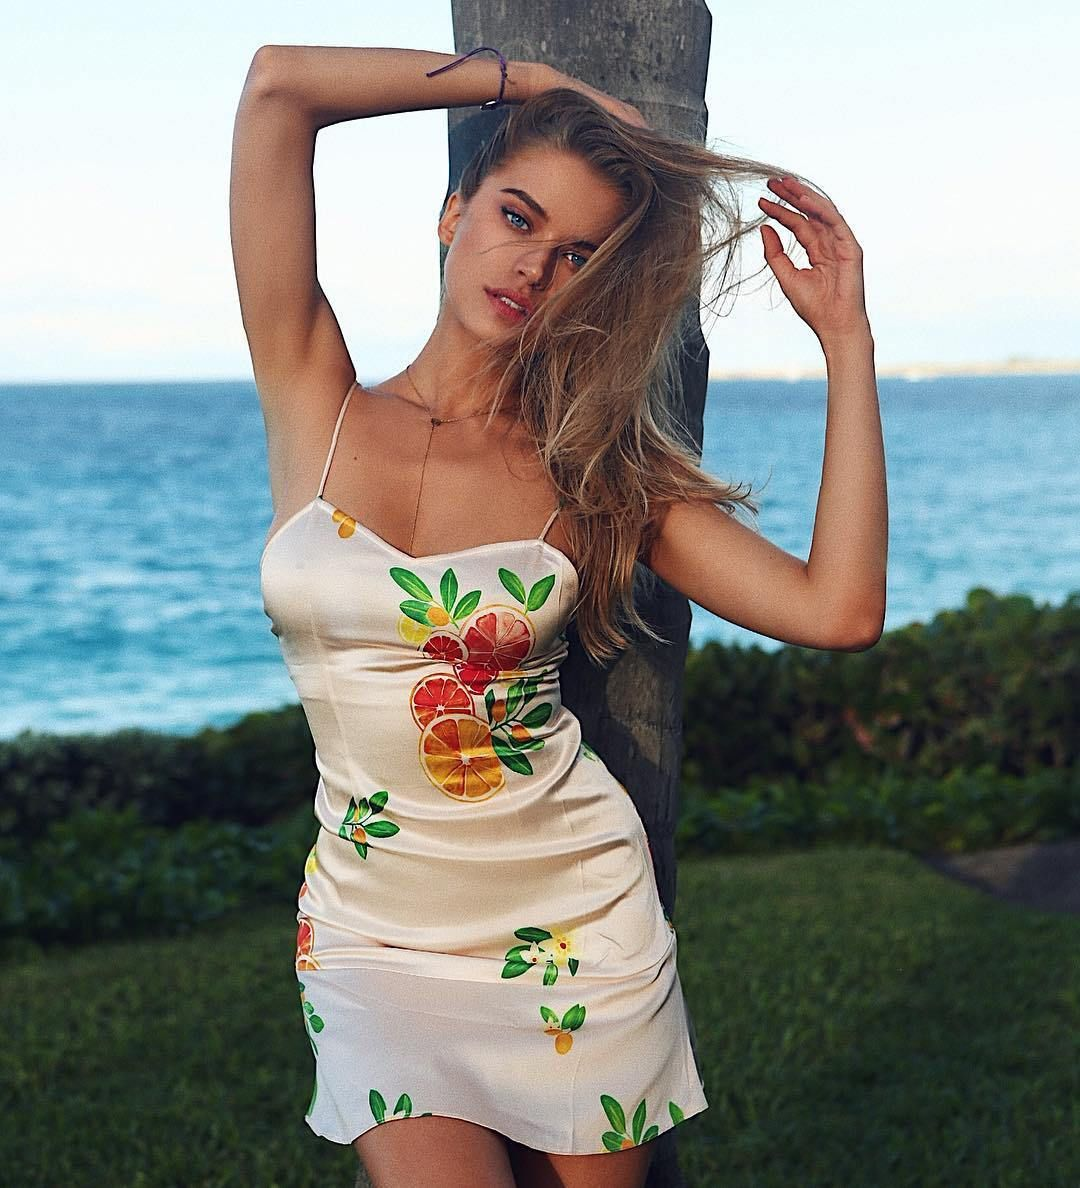 Dresses so tight youll lose circulation 50 Photos